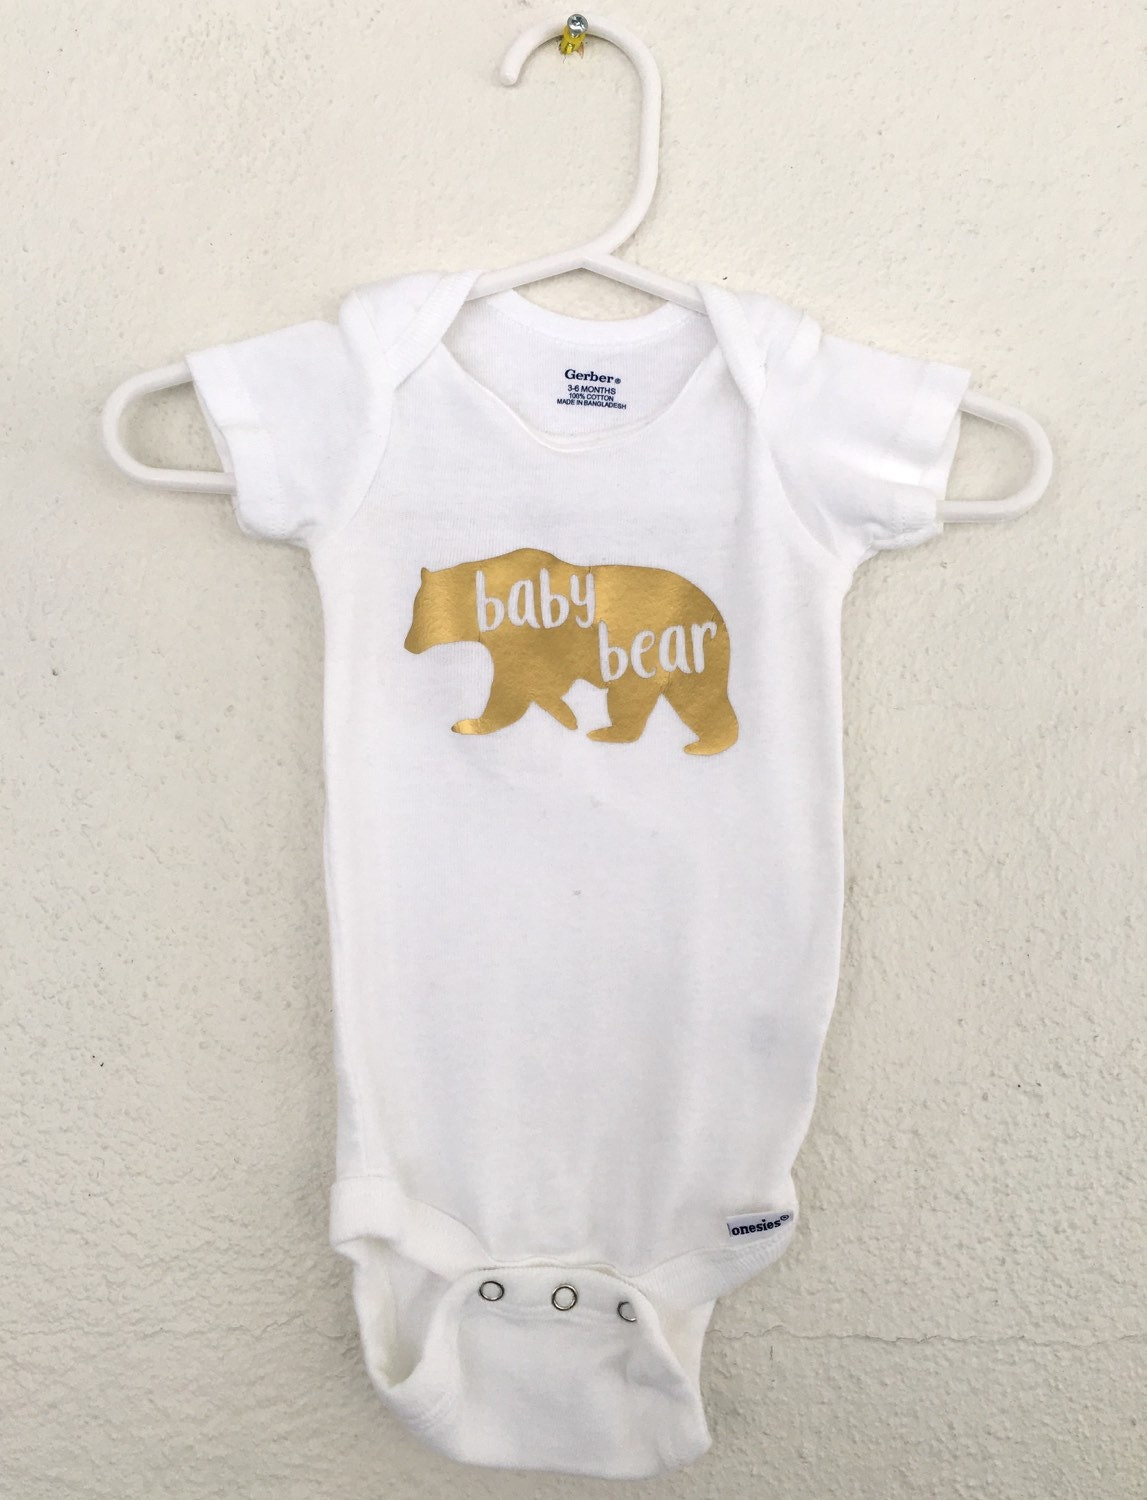 This has to be the best thing to do with a onesie after your baby has outgrown it. Artists and crafty moms are turning those old baby clothes into teddy bears and parents are loving them.